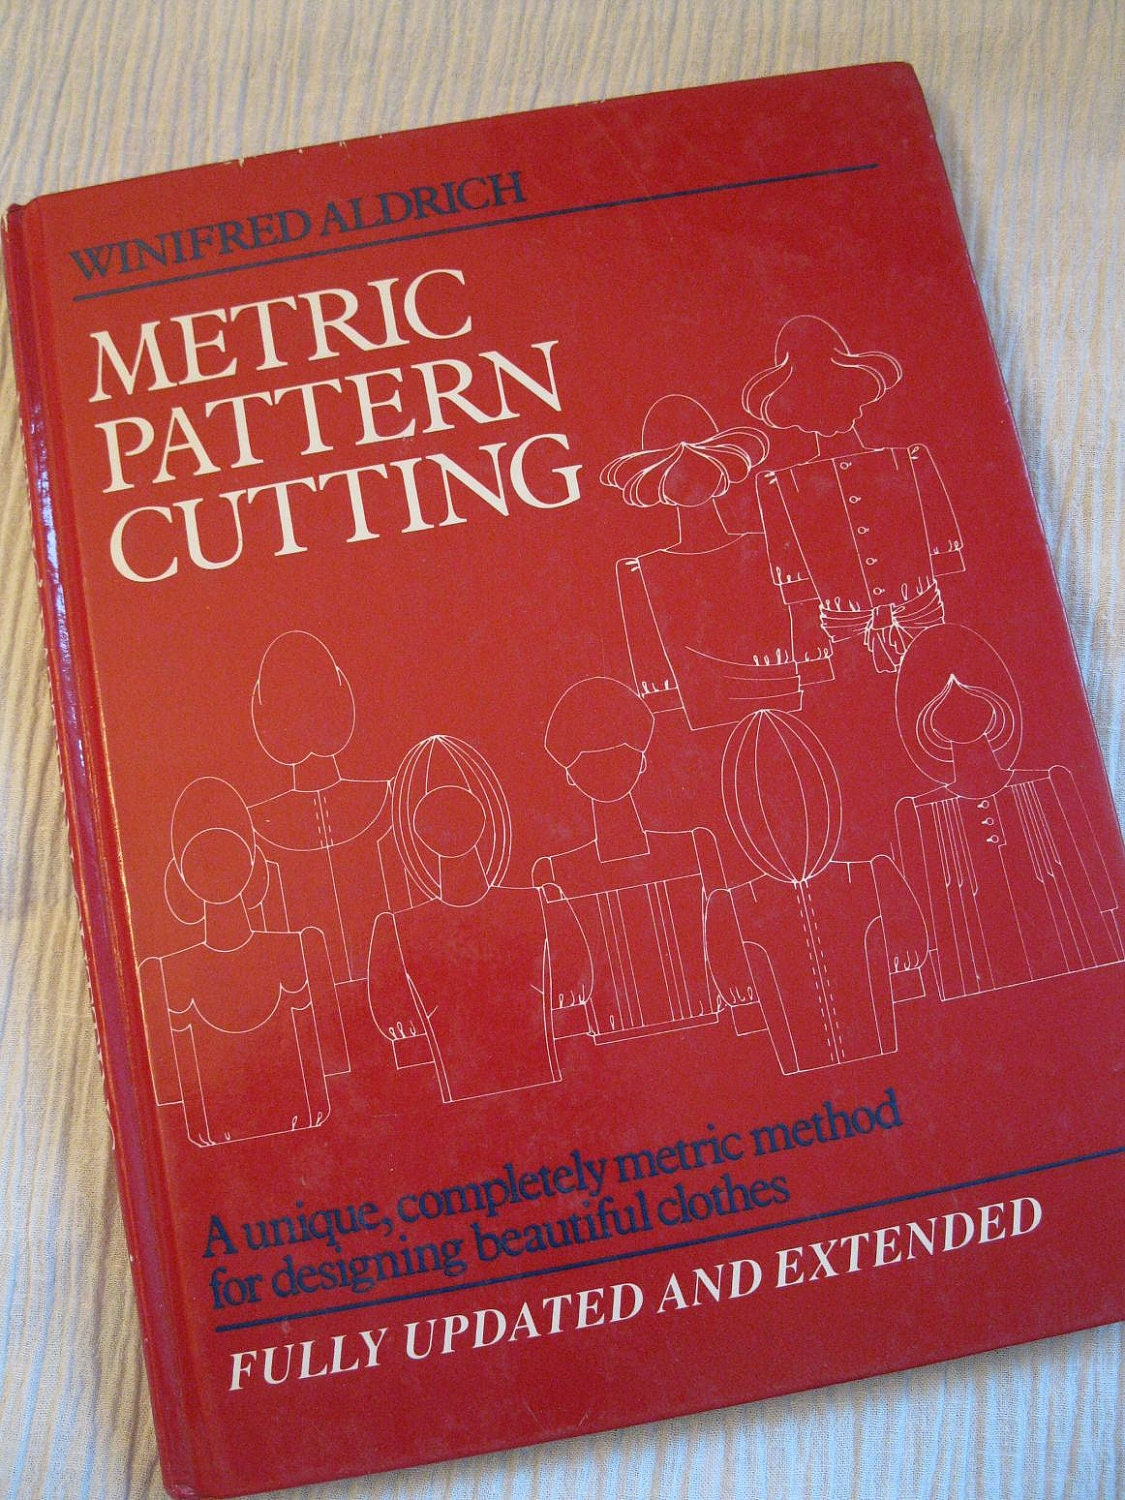 Metric pattern cutting for menswear by winifred aldrich download metric pattern cutting for menswear by winifred aldrich download fandeluxe Images